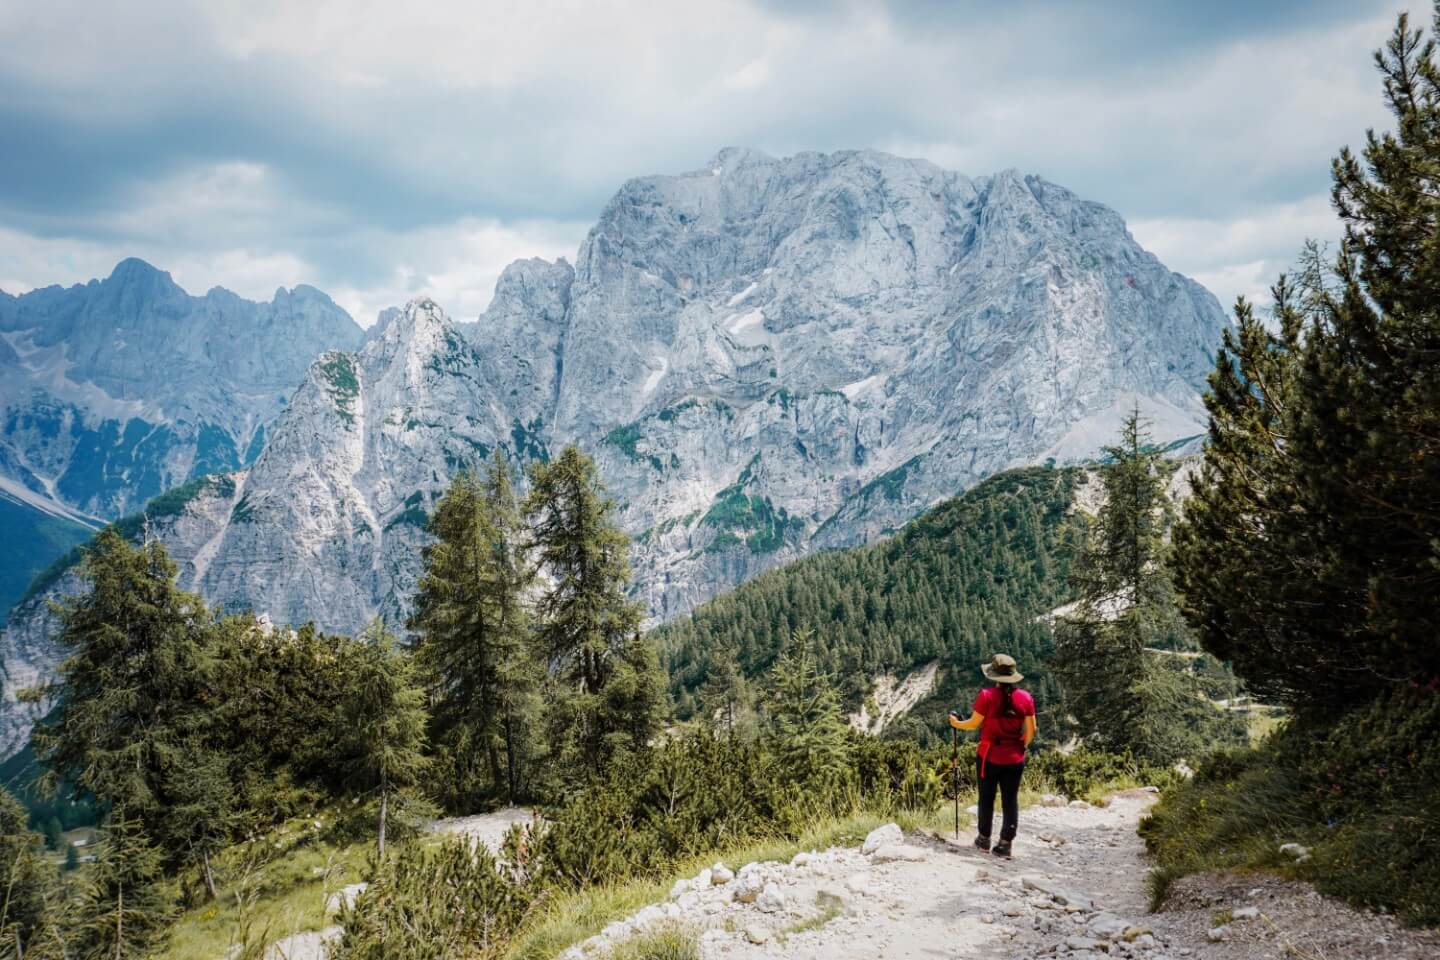 Slemenova Špica Hike, Kranjska Gora, Slovenia | Moon & Honey Travel